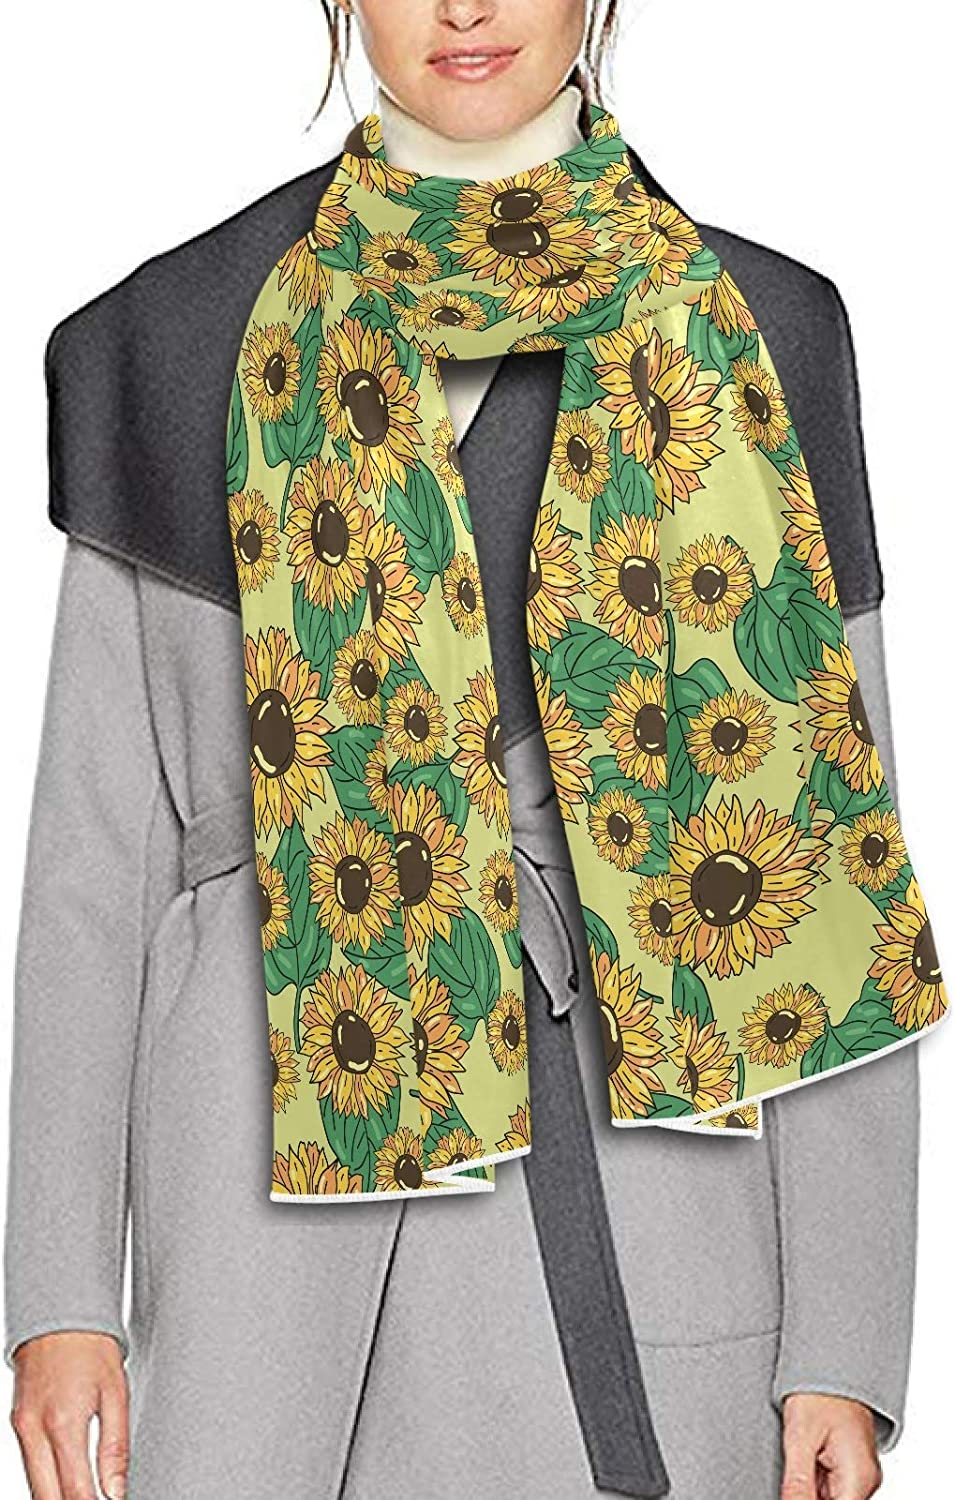 Scarf for Women and Men Sunflower Green Fresh Leaves Blanket Shawl Scarf wraps Thick Soft Winter Oversized Scarf Lightweight